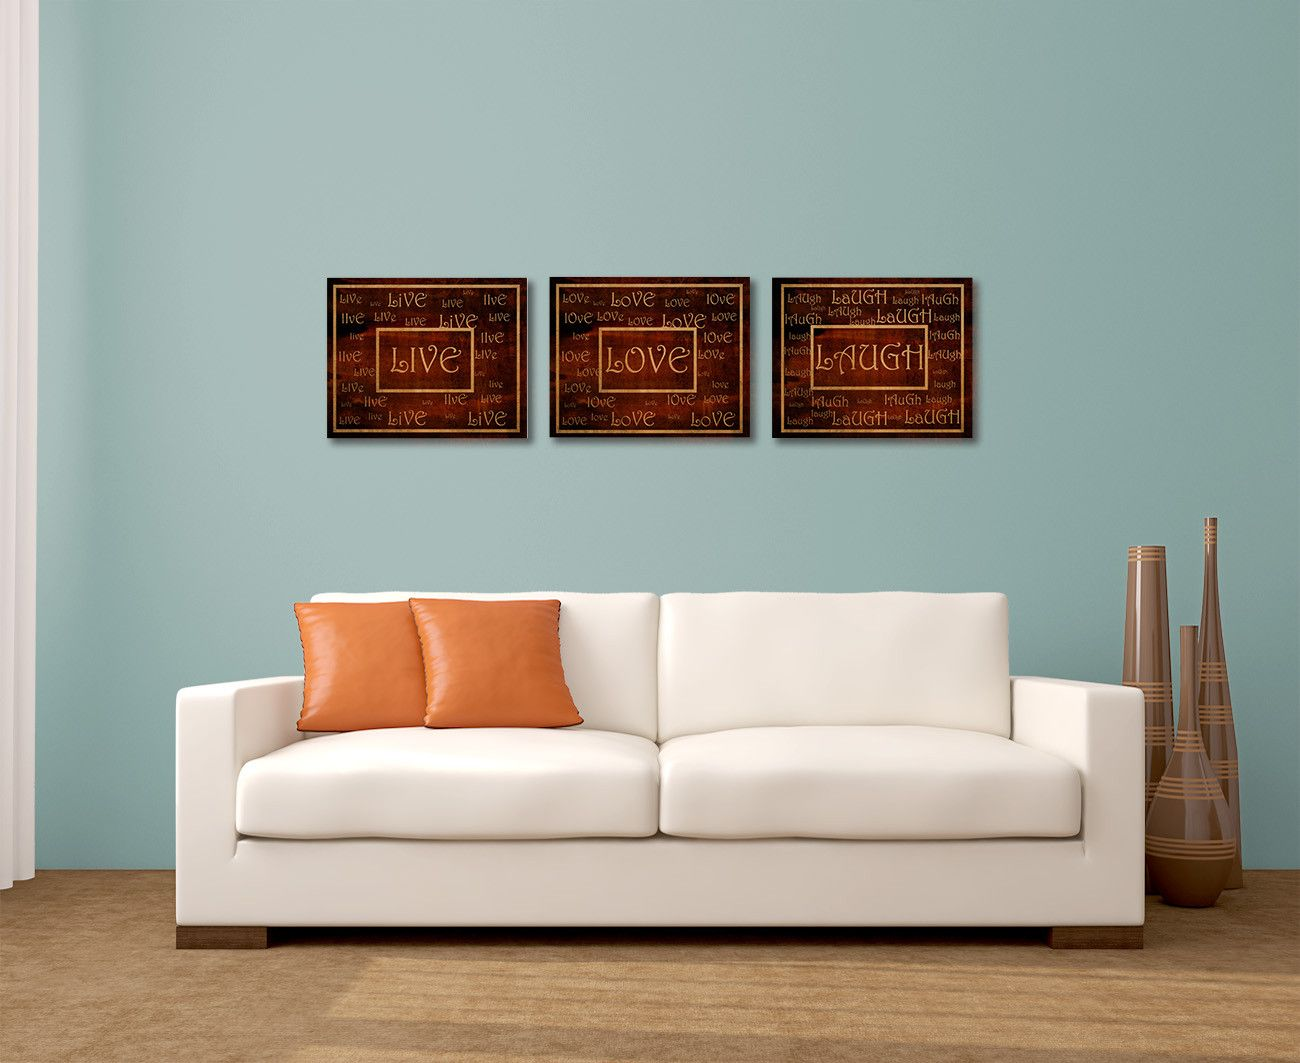 Live Love Laugh Wall Art Display Create This Living Room Wall Art Display  And Spread The